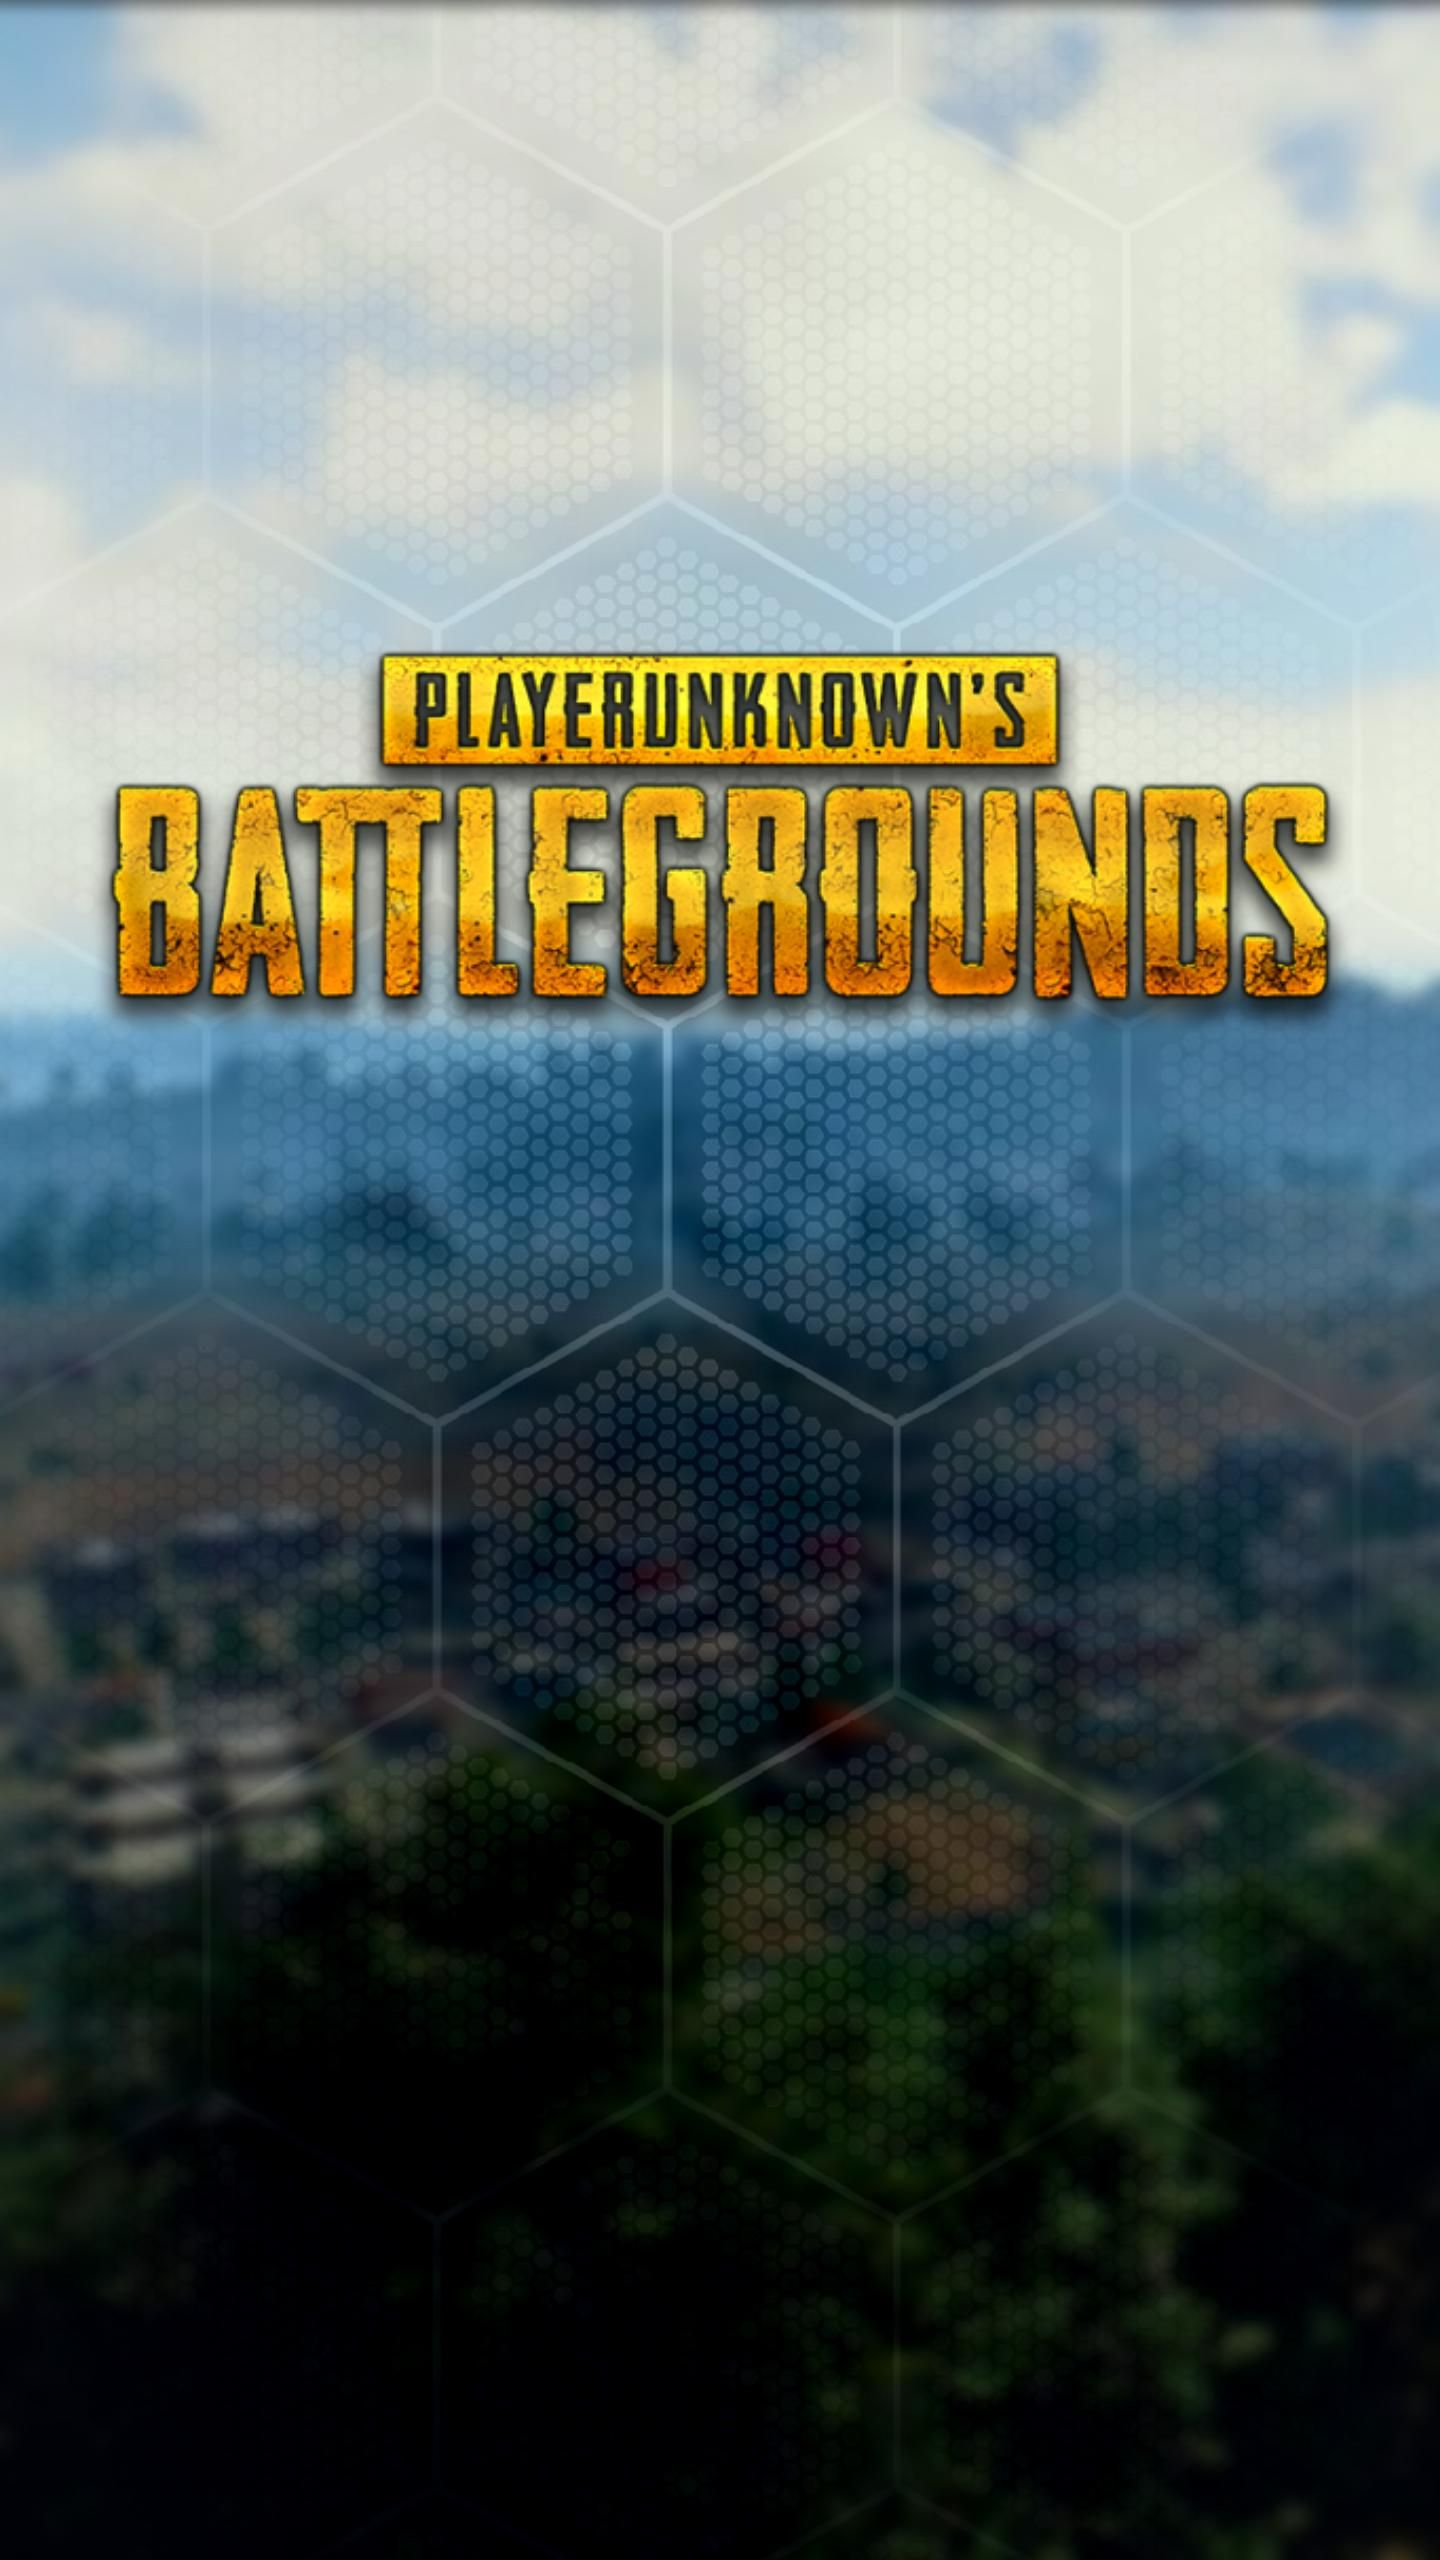 PUBG wallpapers for mobile phone. Обои PUBG на телефон. | Hd wallpapers for  mobile, Mobile wallpaper, Mobile tricks